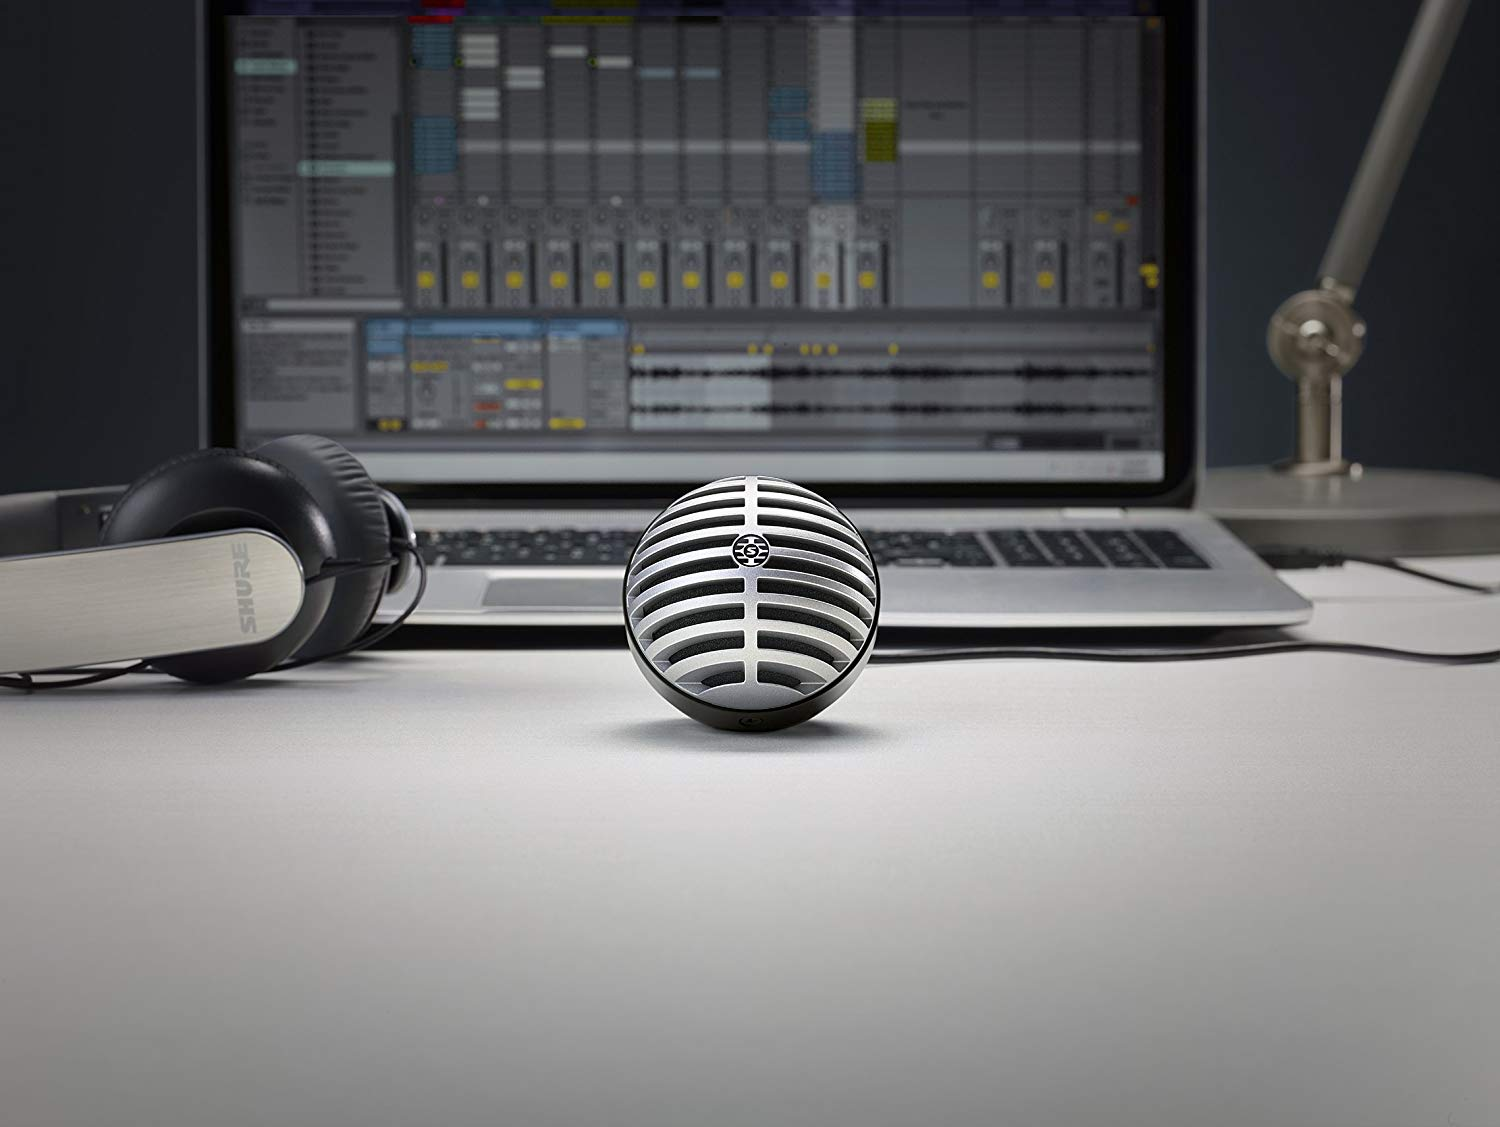 The Shure MV5 Digital Condenser Mic Sitting front and center in front of a Computer